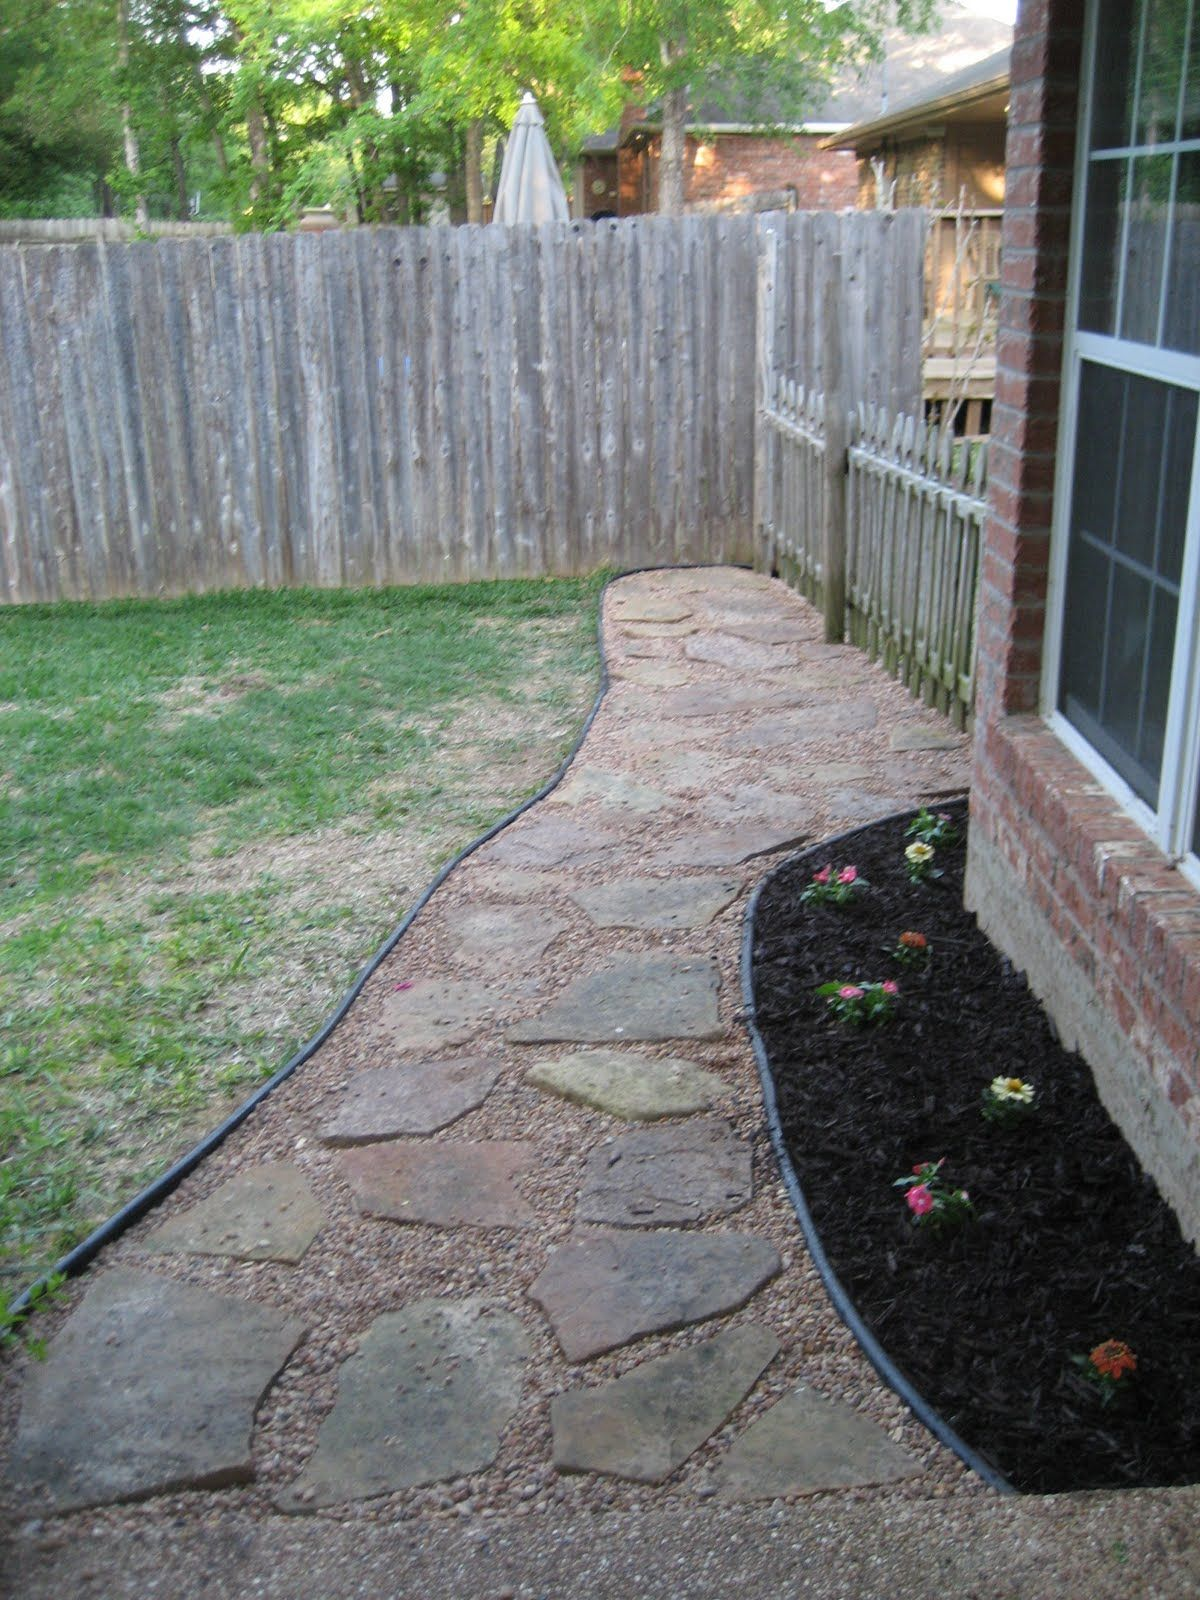 Flagstone walkway in the backyard